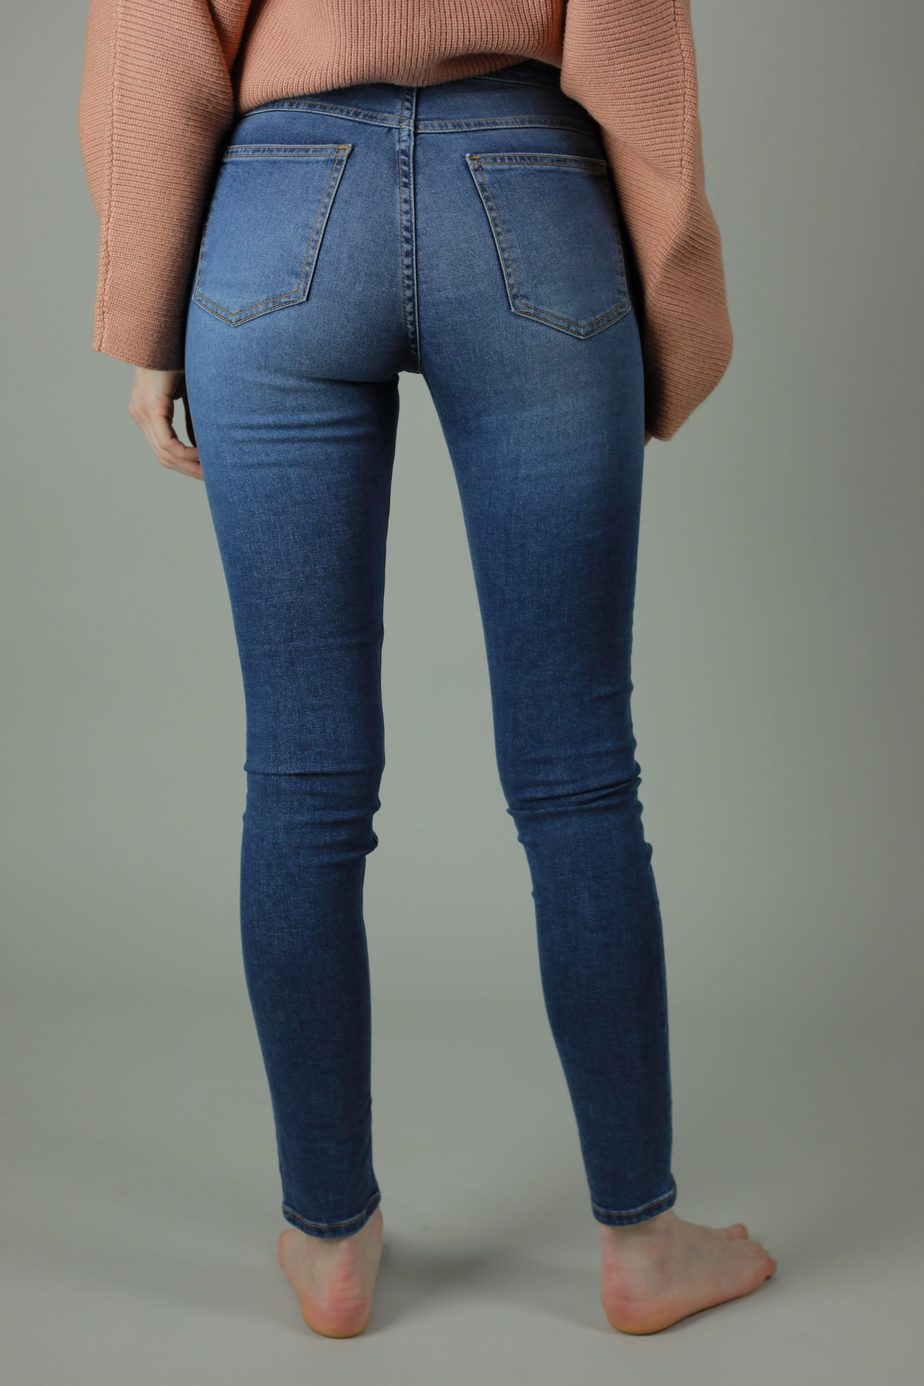 Our High waist Kaila collection are 98% cotton, 2% Lycra. The Kaila New York jean is for the those who are looking for comfort, timeless style and a high quality jean so you'll never have to compromise. Front view.